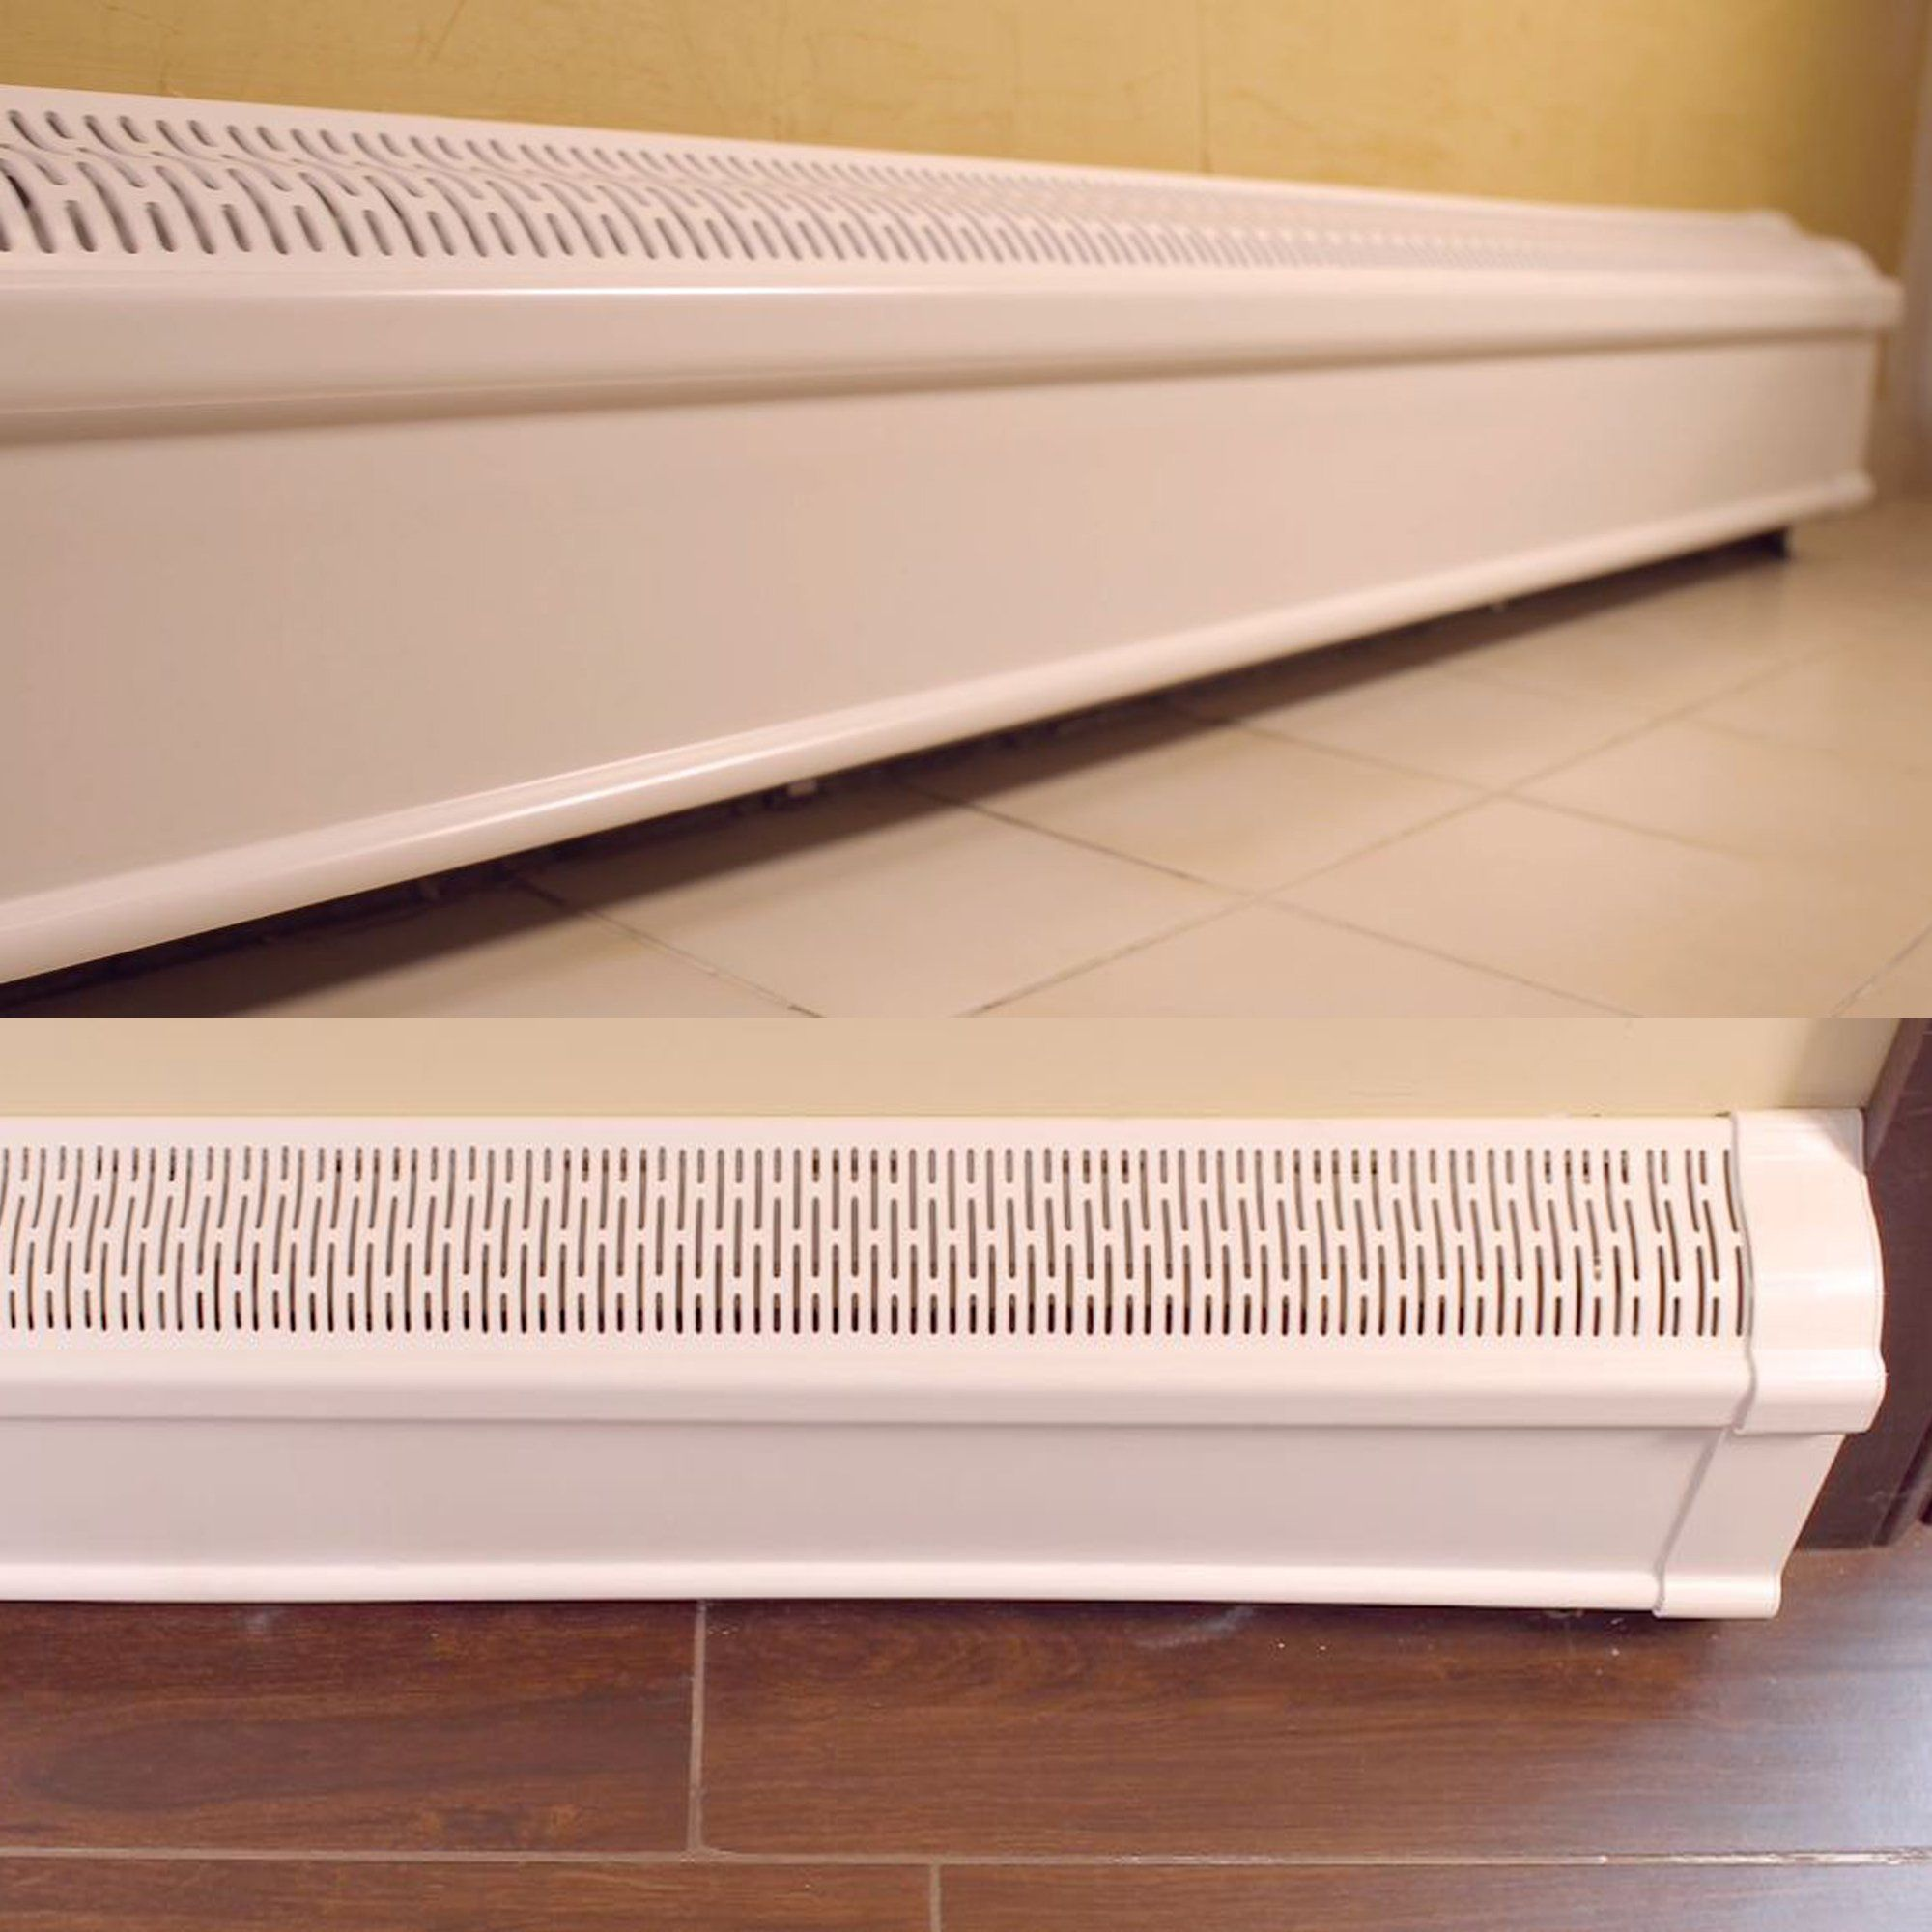 Baseboard Heater Cover Complete Set With Right And Left End Caps